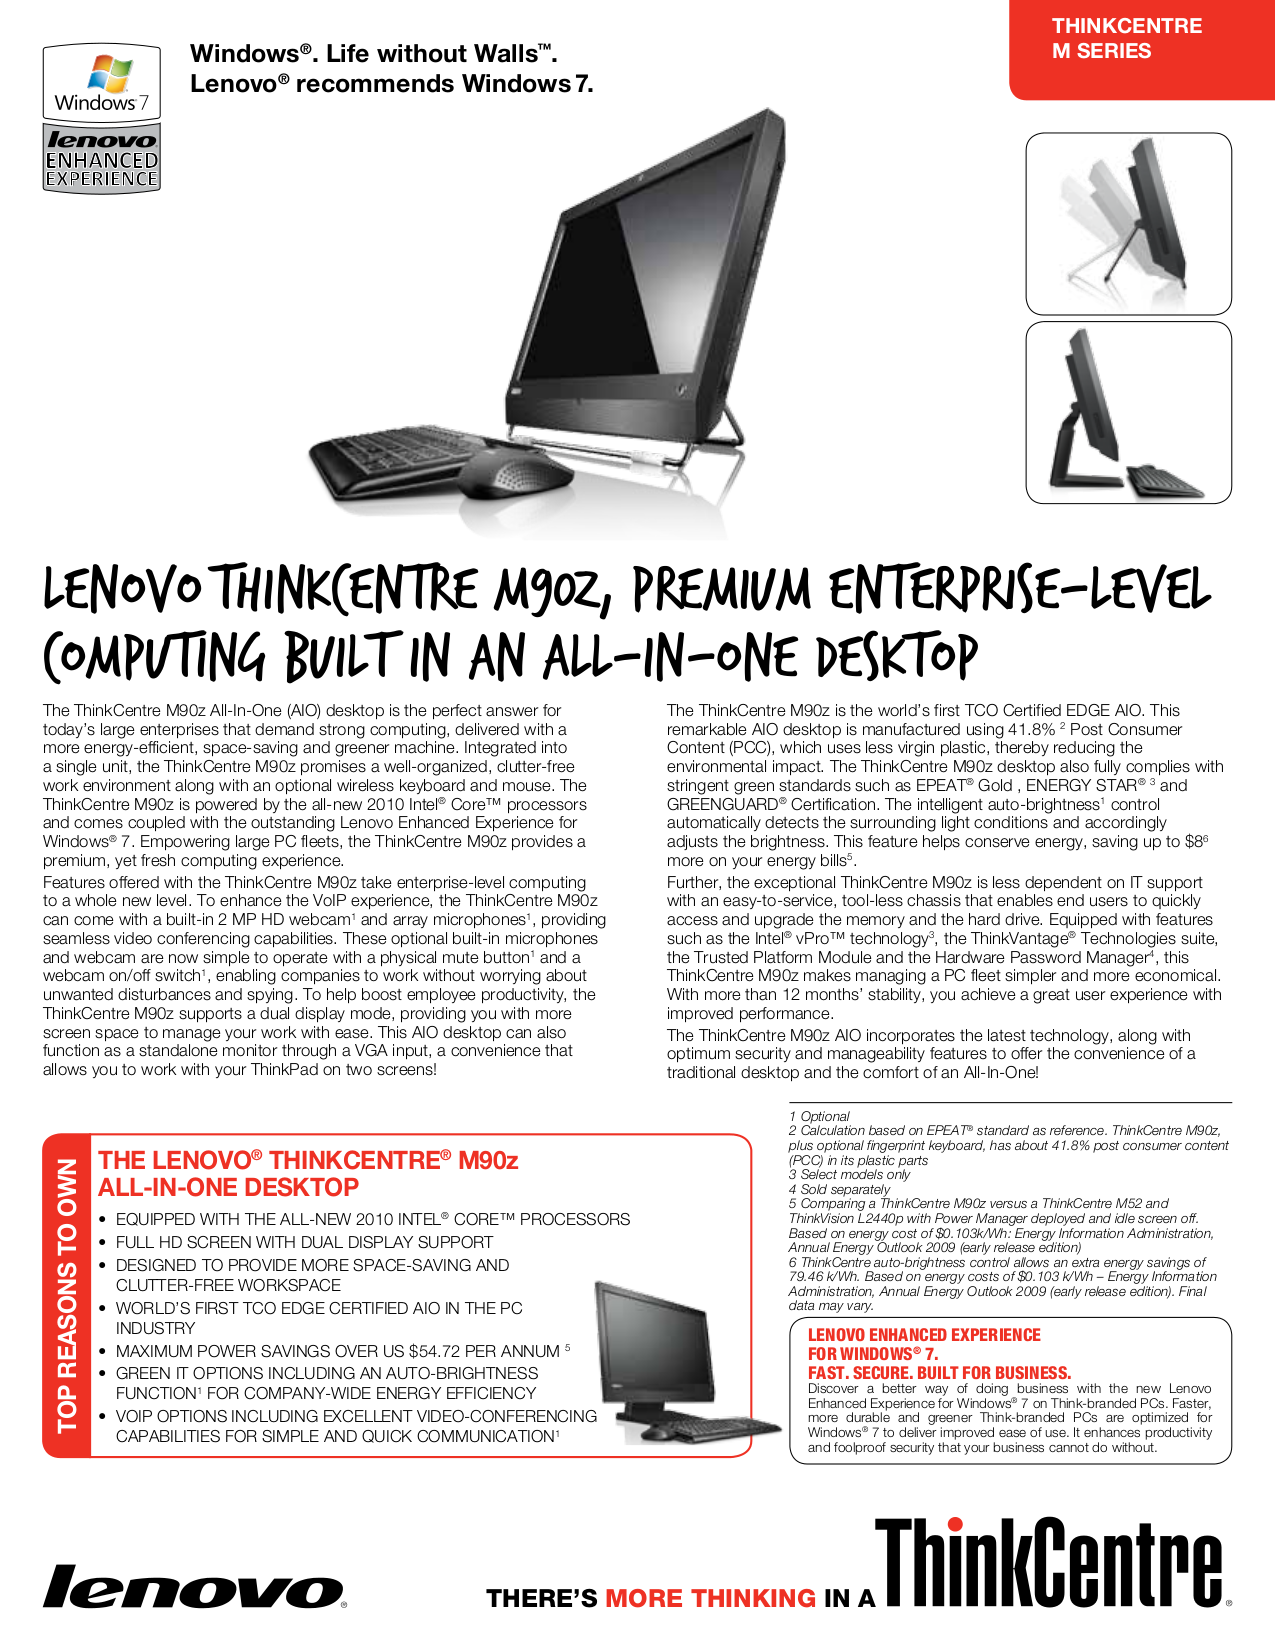 pdf for Lenovo Desktop ThinkCentre M90z 5205 manual